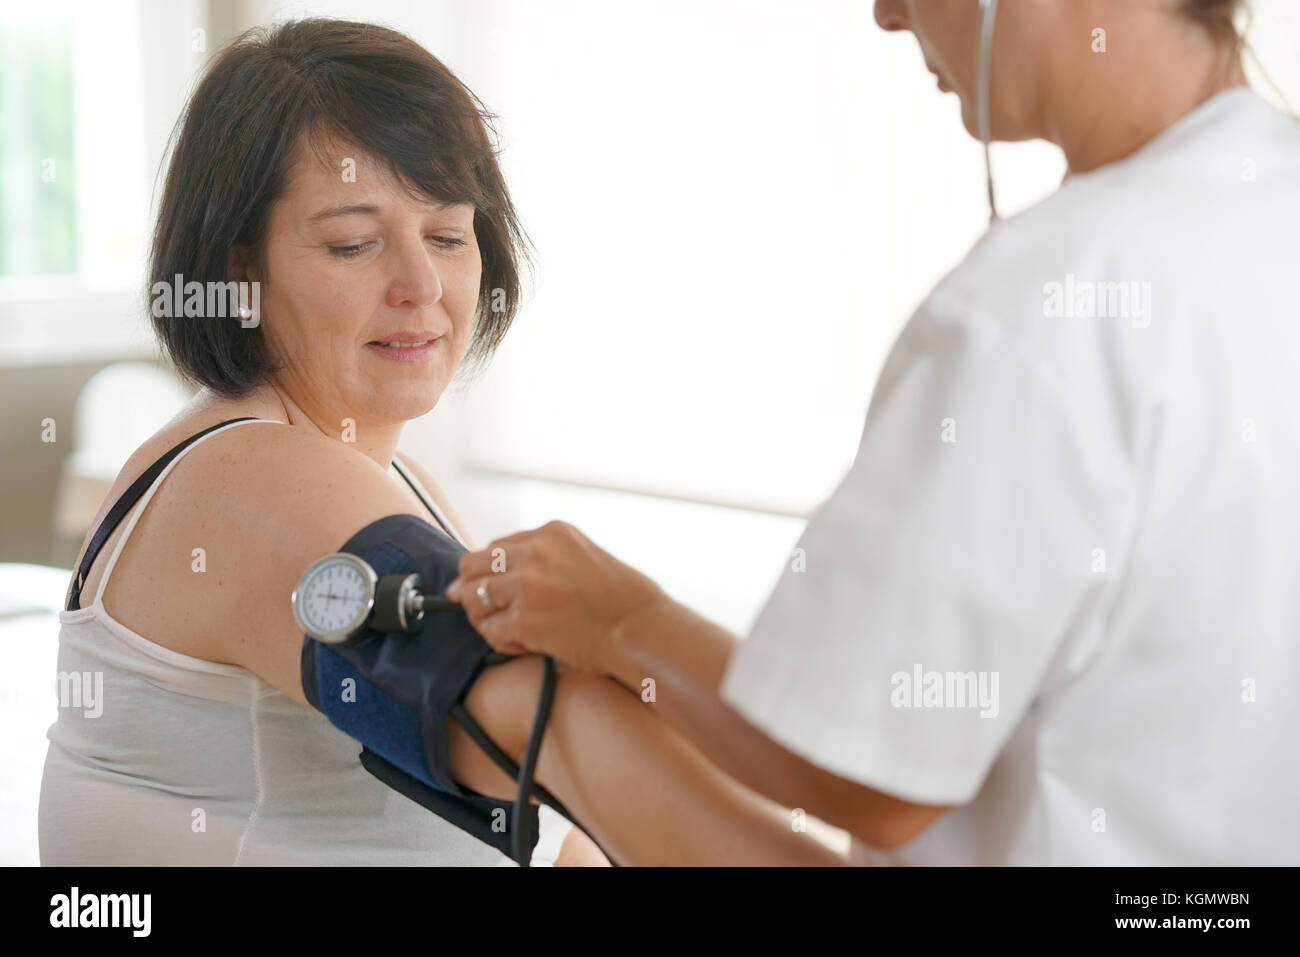 Mature woman at the doctor, controlling blood pressure - Stock Image